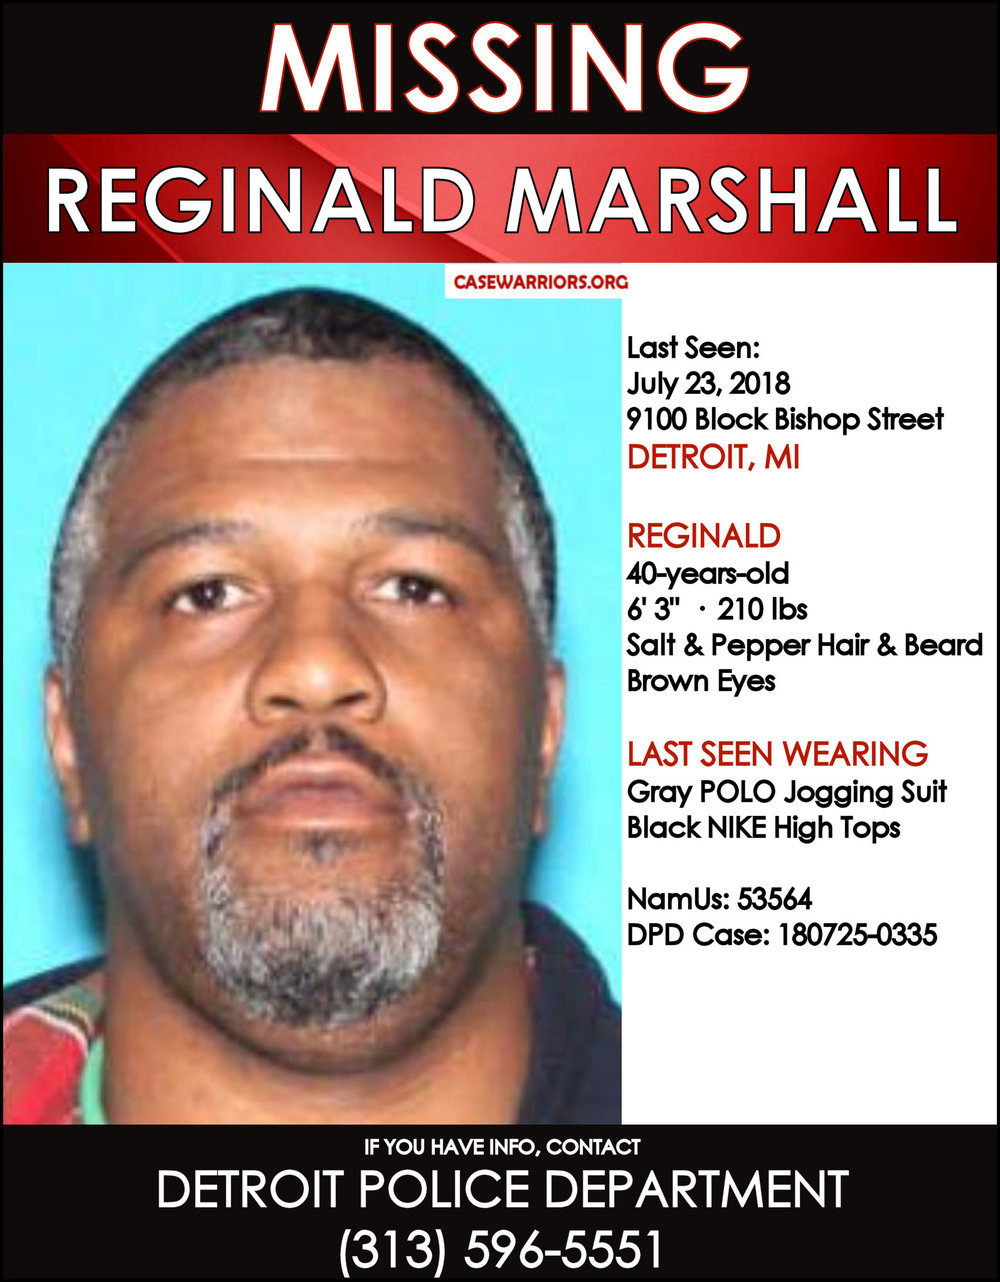 REGINALD MARSHALL